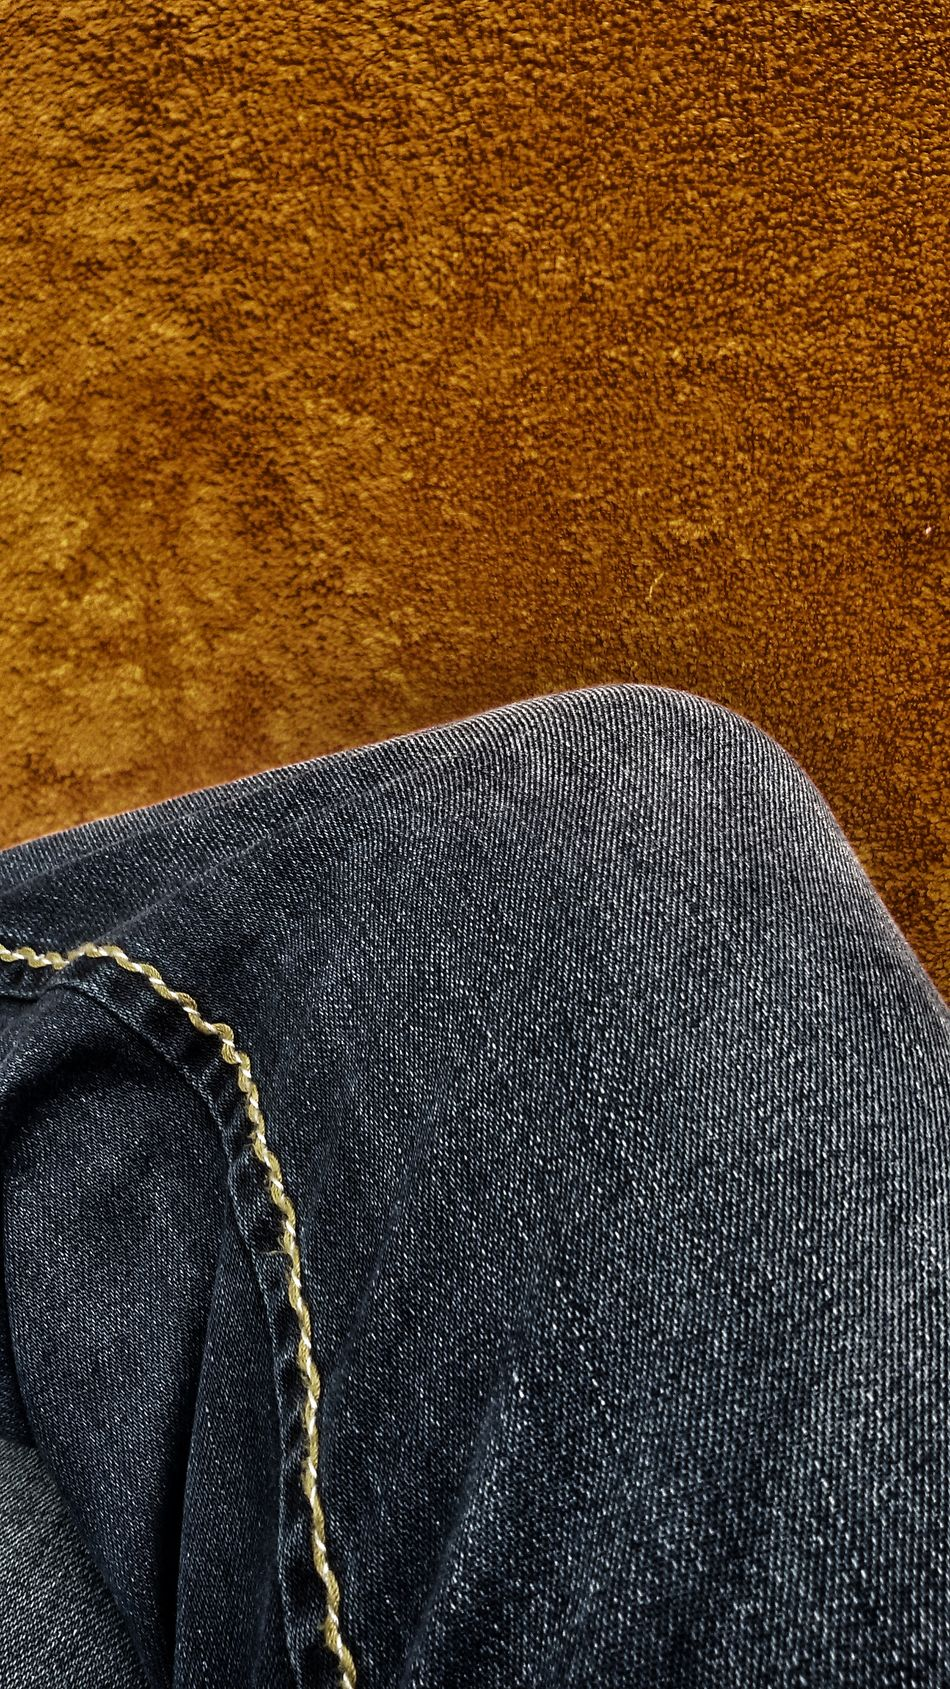 Art Is Everywhere Detail Texture Abstract Fabric Clothes Seemed Denim Trousers Towel